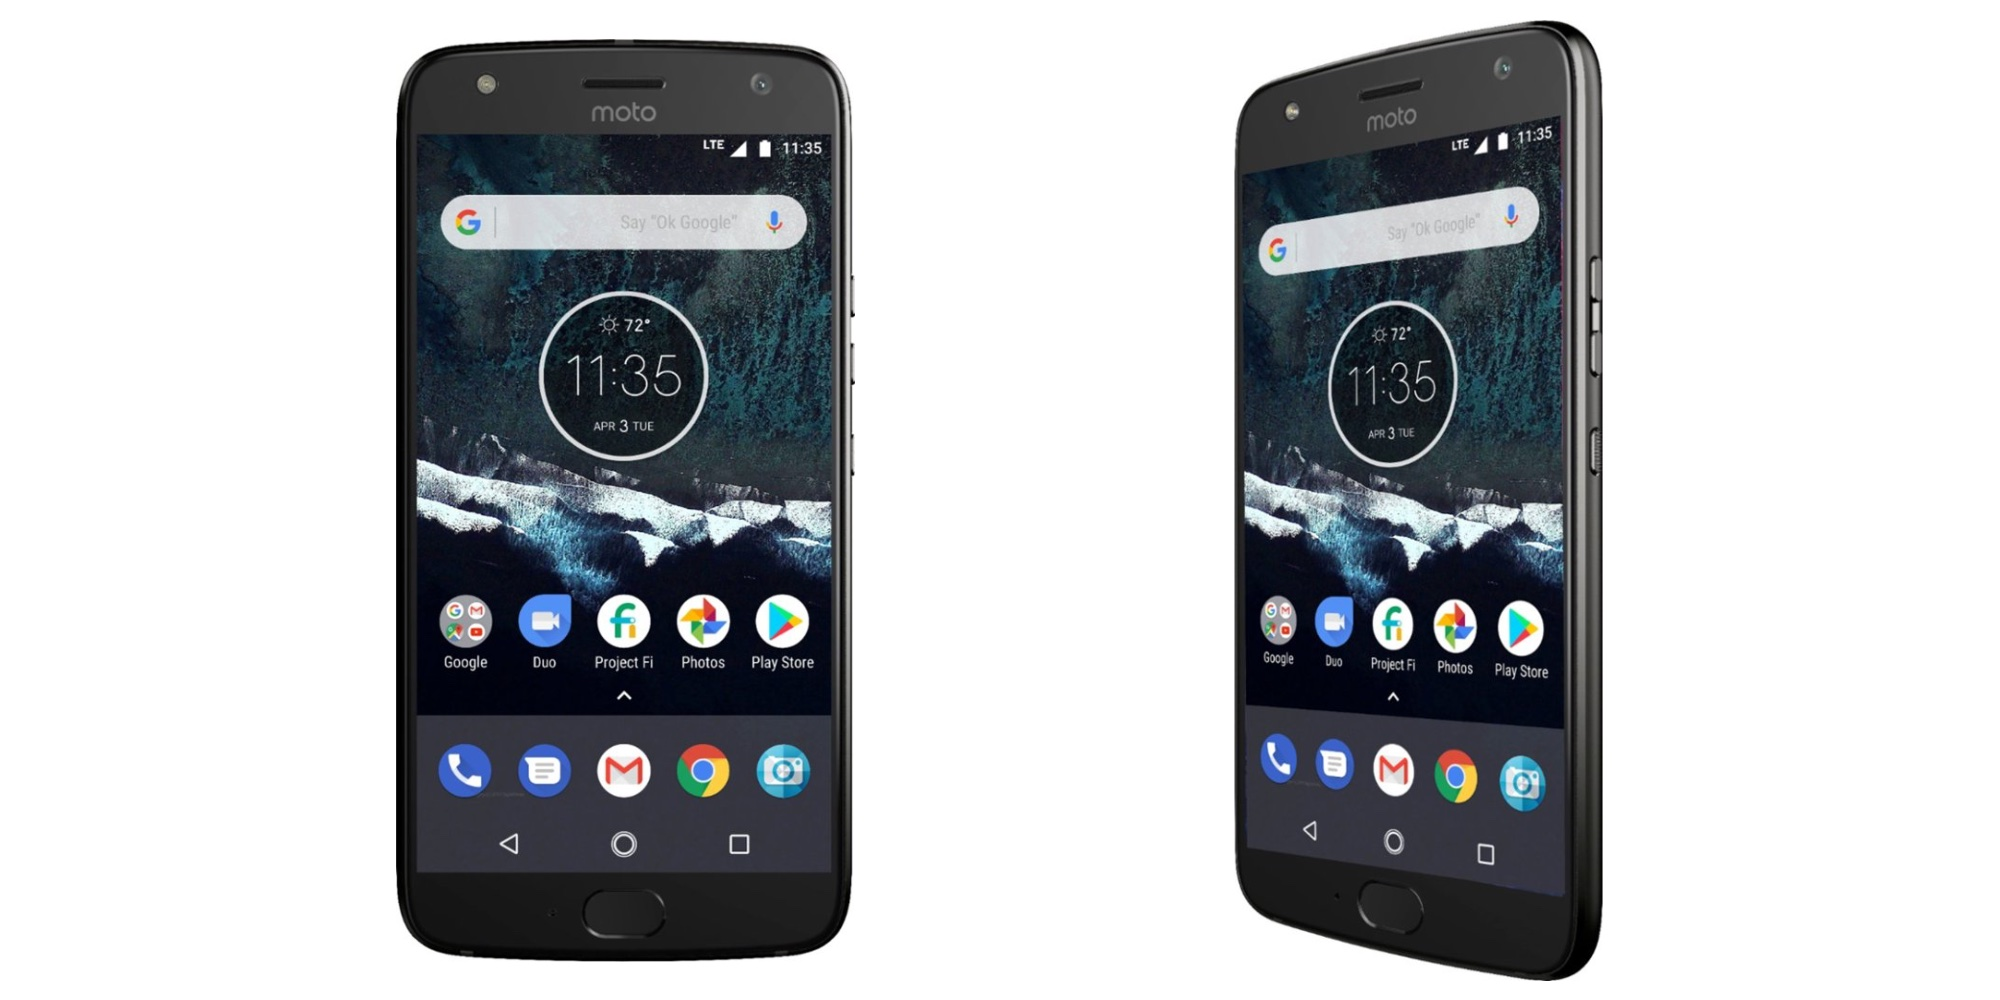 Motorola's Moto X4 Android One 64GB Smartphone includes a FREE $30 SIM card kit at $200